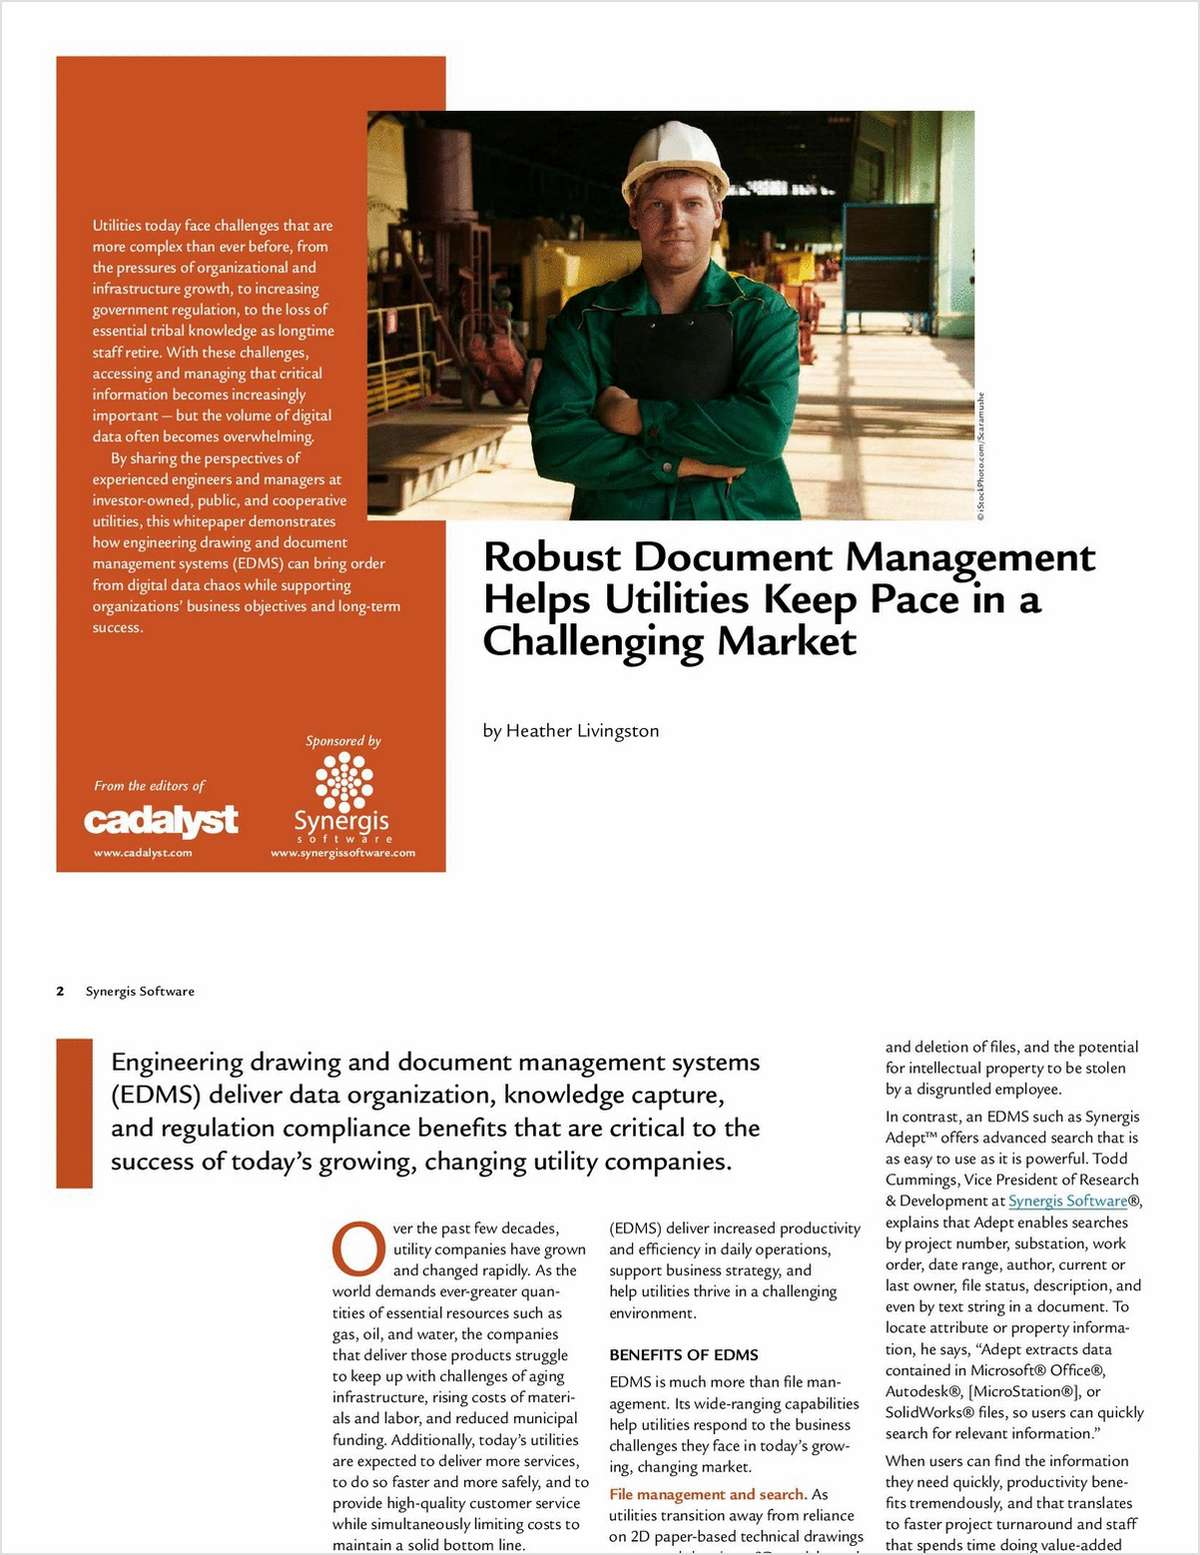 How 4 Utilities Used Engineering Document Management to Keep Pace in a Challenging Market